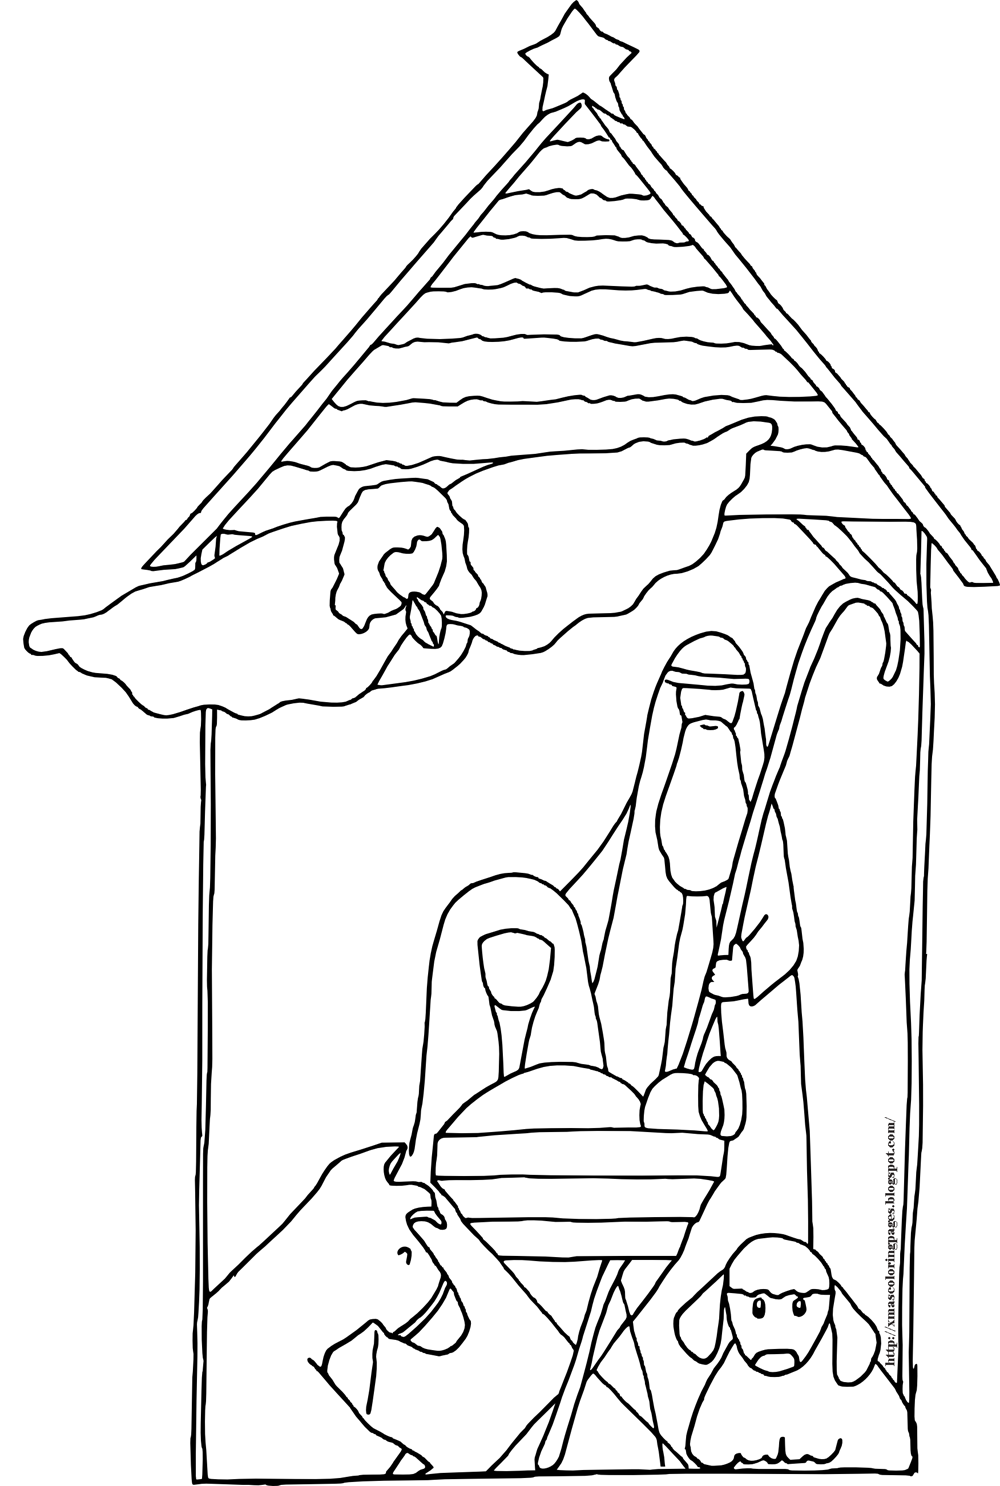 jesus coloring pages glorious jesus coloring bible coloring free printable pages coloring jesus